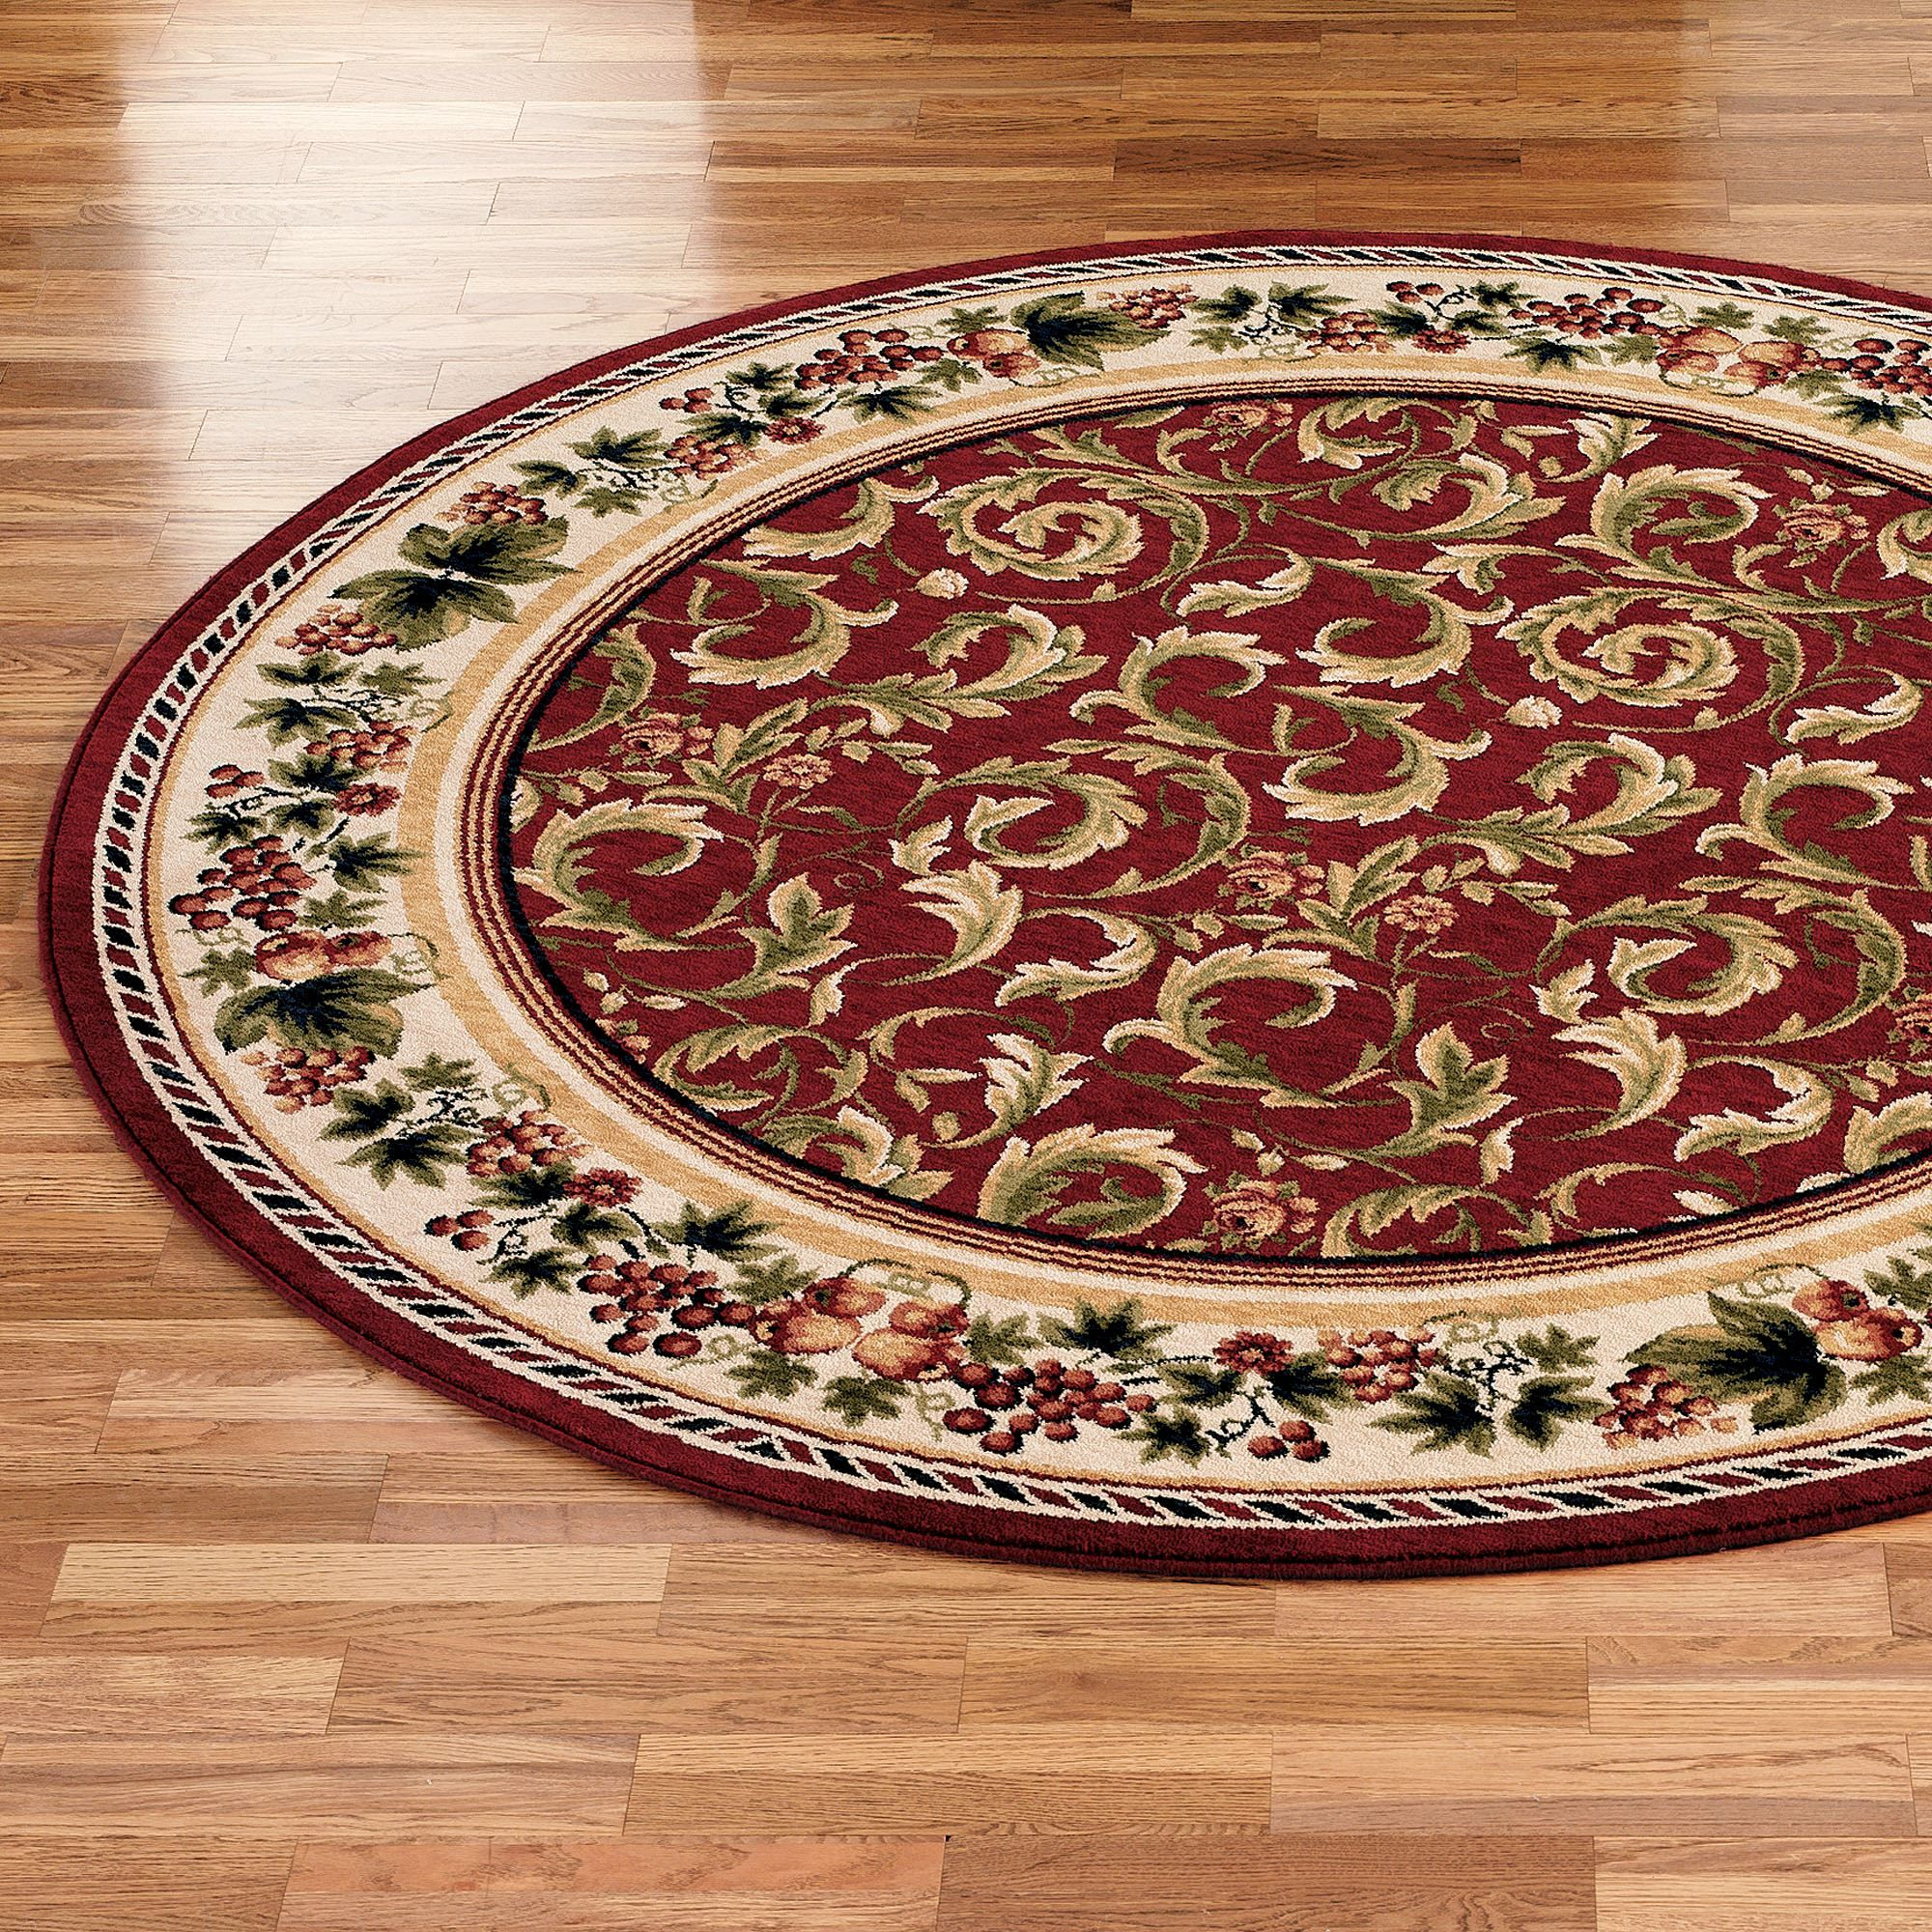 Inspiration G And Acanthus Round Area Rugs